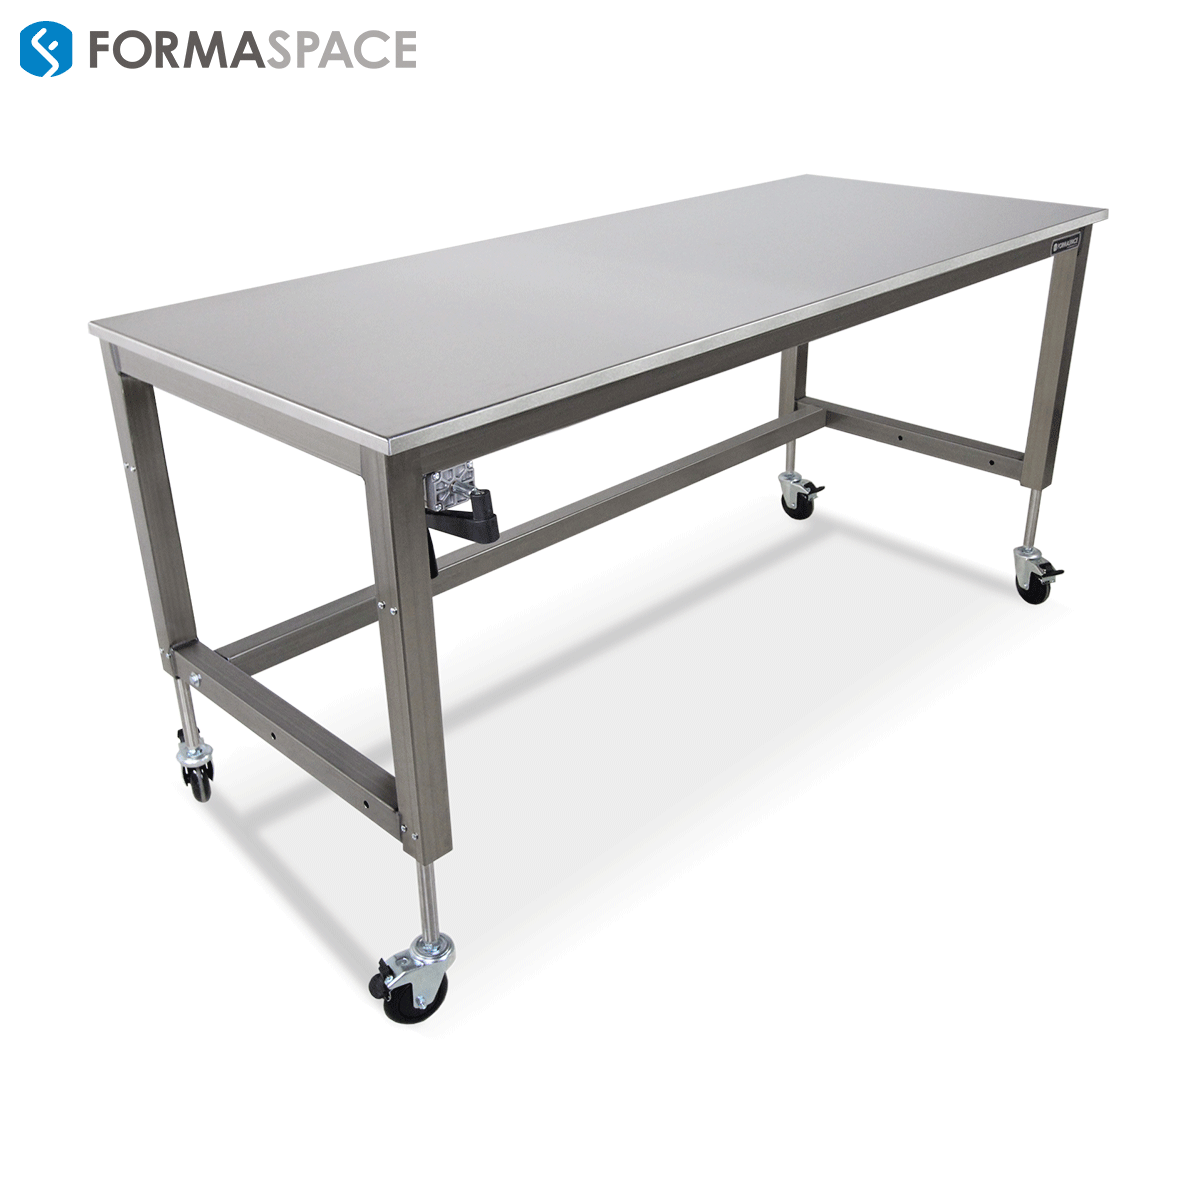 sit to stand lab bench FORMASPACE